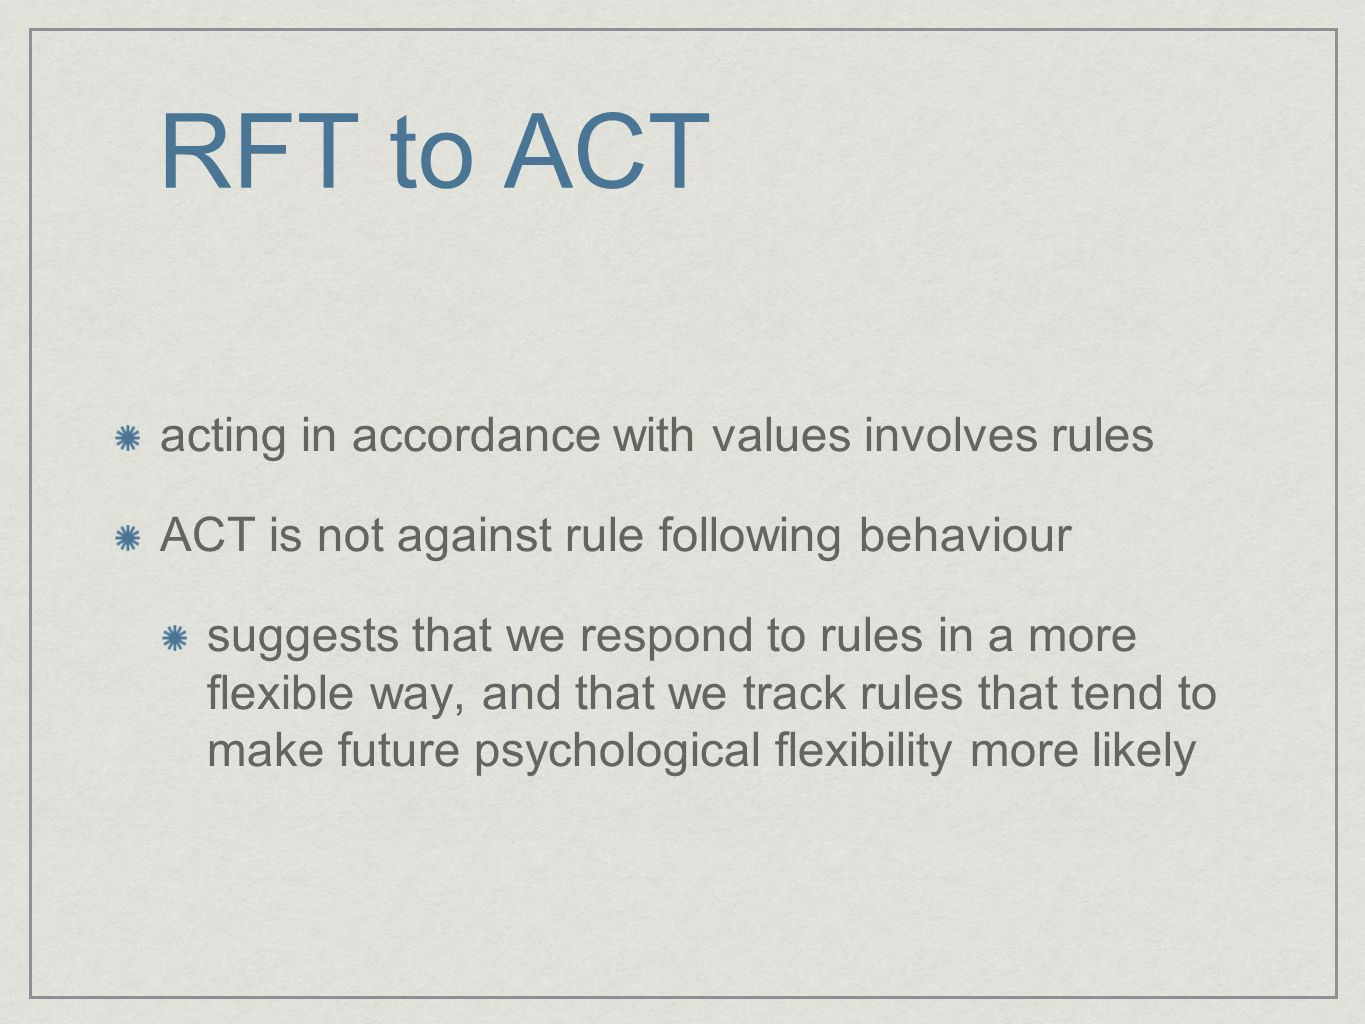 RFT to ACT acting in accordance with values involves rules ACT is not against rule following behaviour suggests that we respond to rules in a more flexible way, and that we track rules that tend to make future psychological flexibility more likely